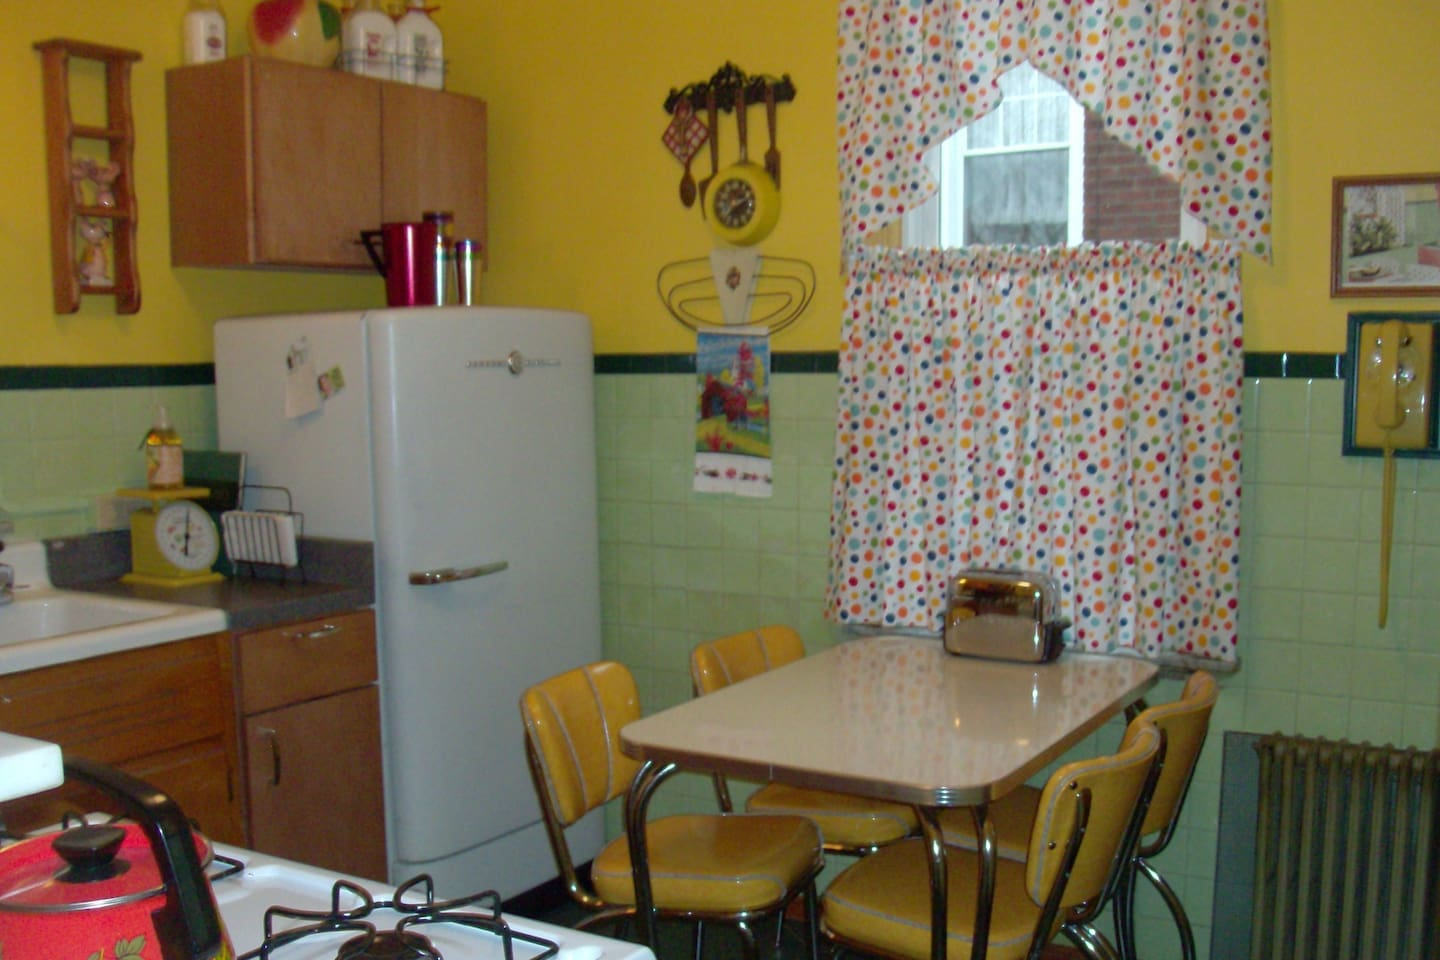 Our nifty 1950s kitchen!